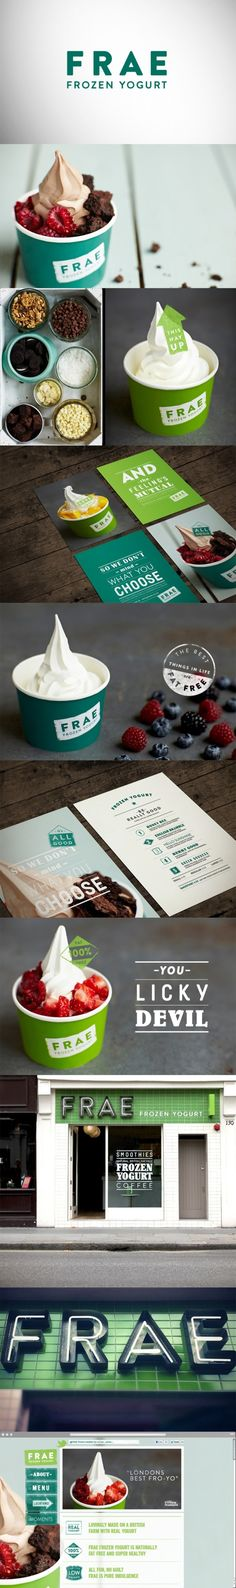 21 super creative Brand identity design Examples for your inspiration